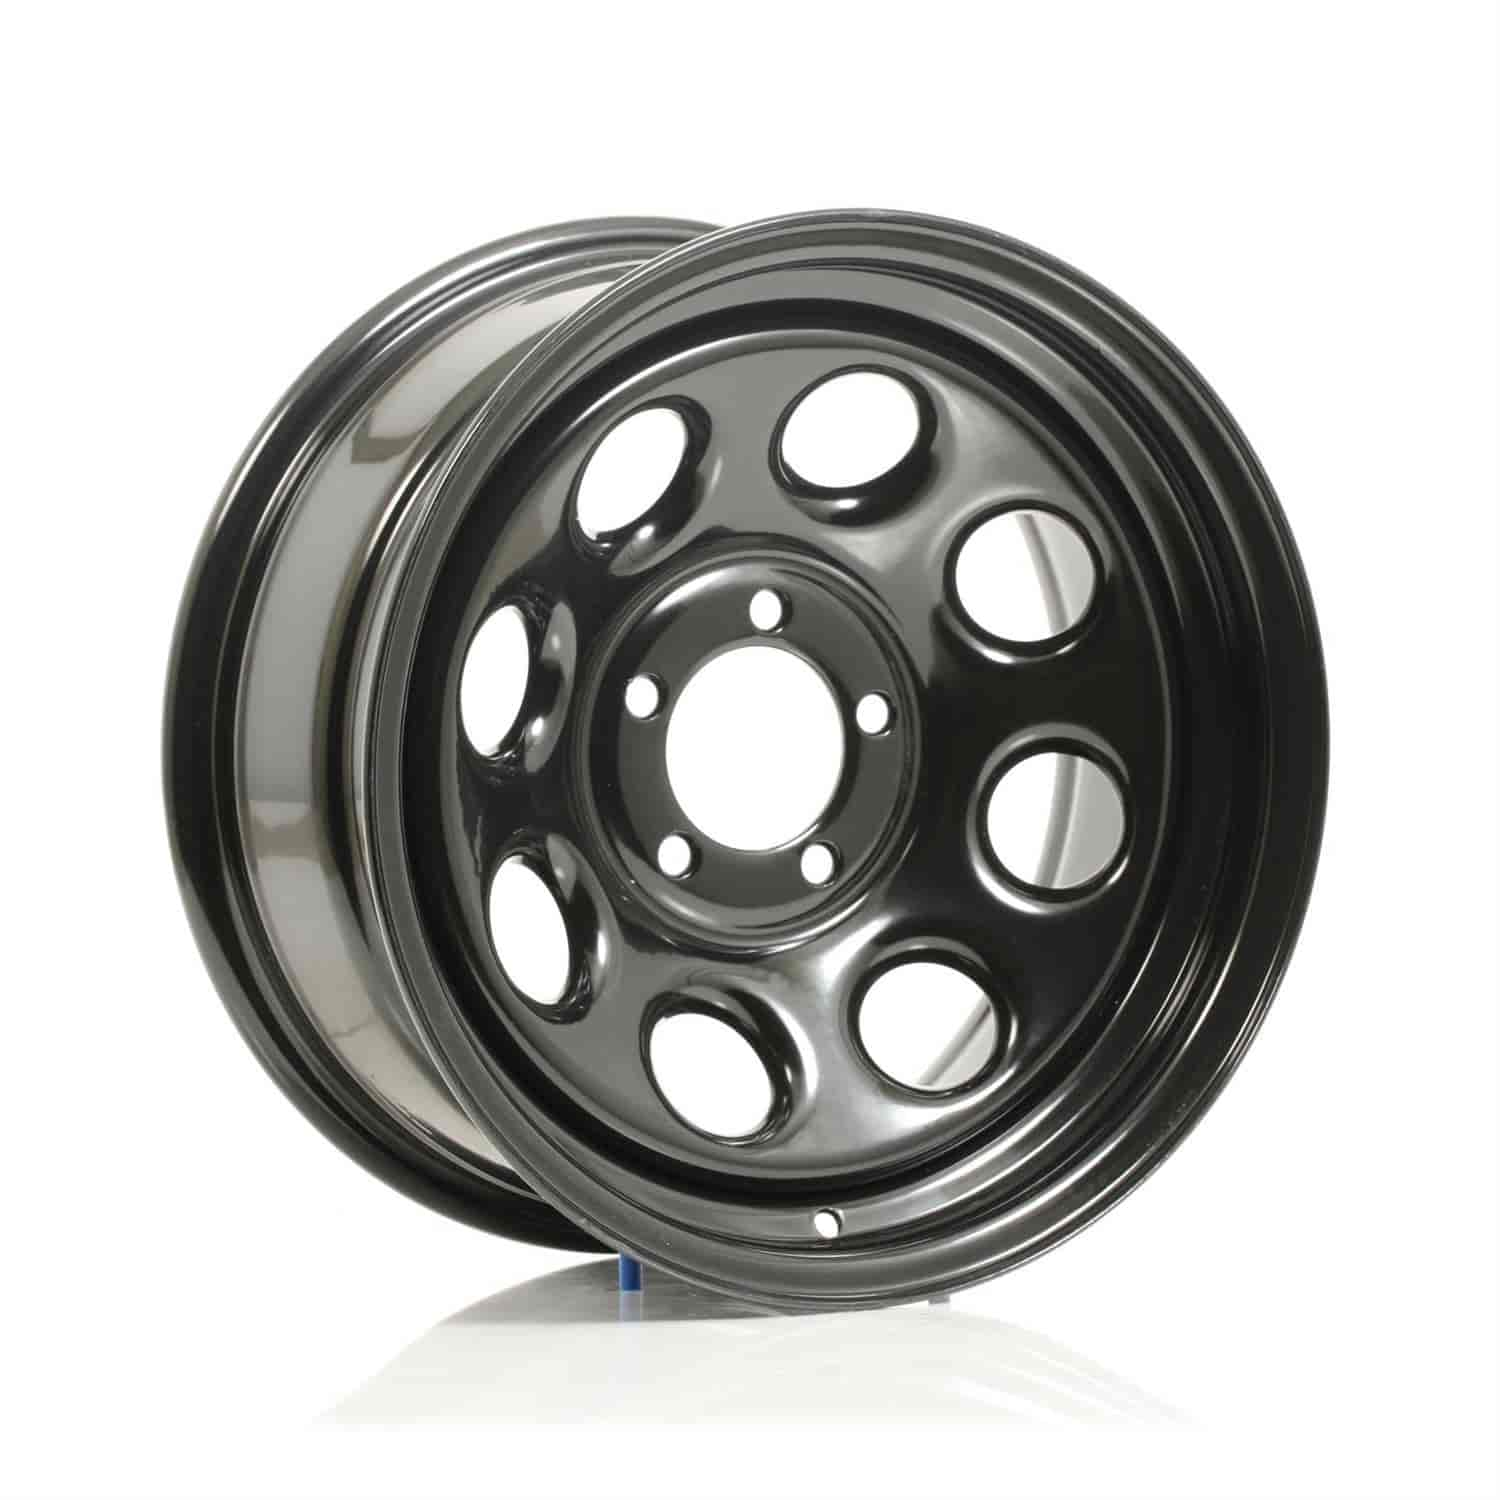 Cragar 3977755 - Cragar Black Soft 8 Wheels